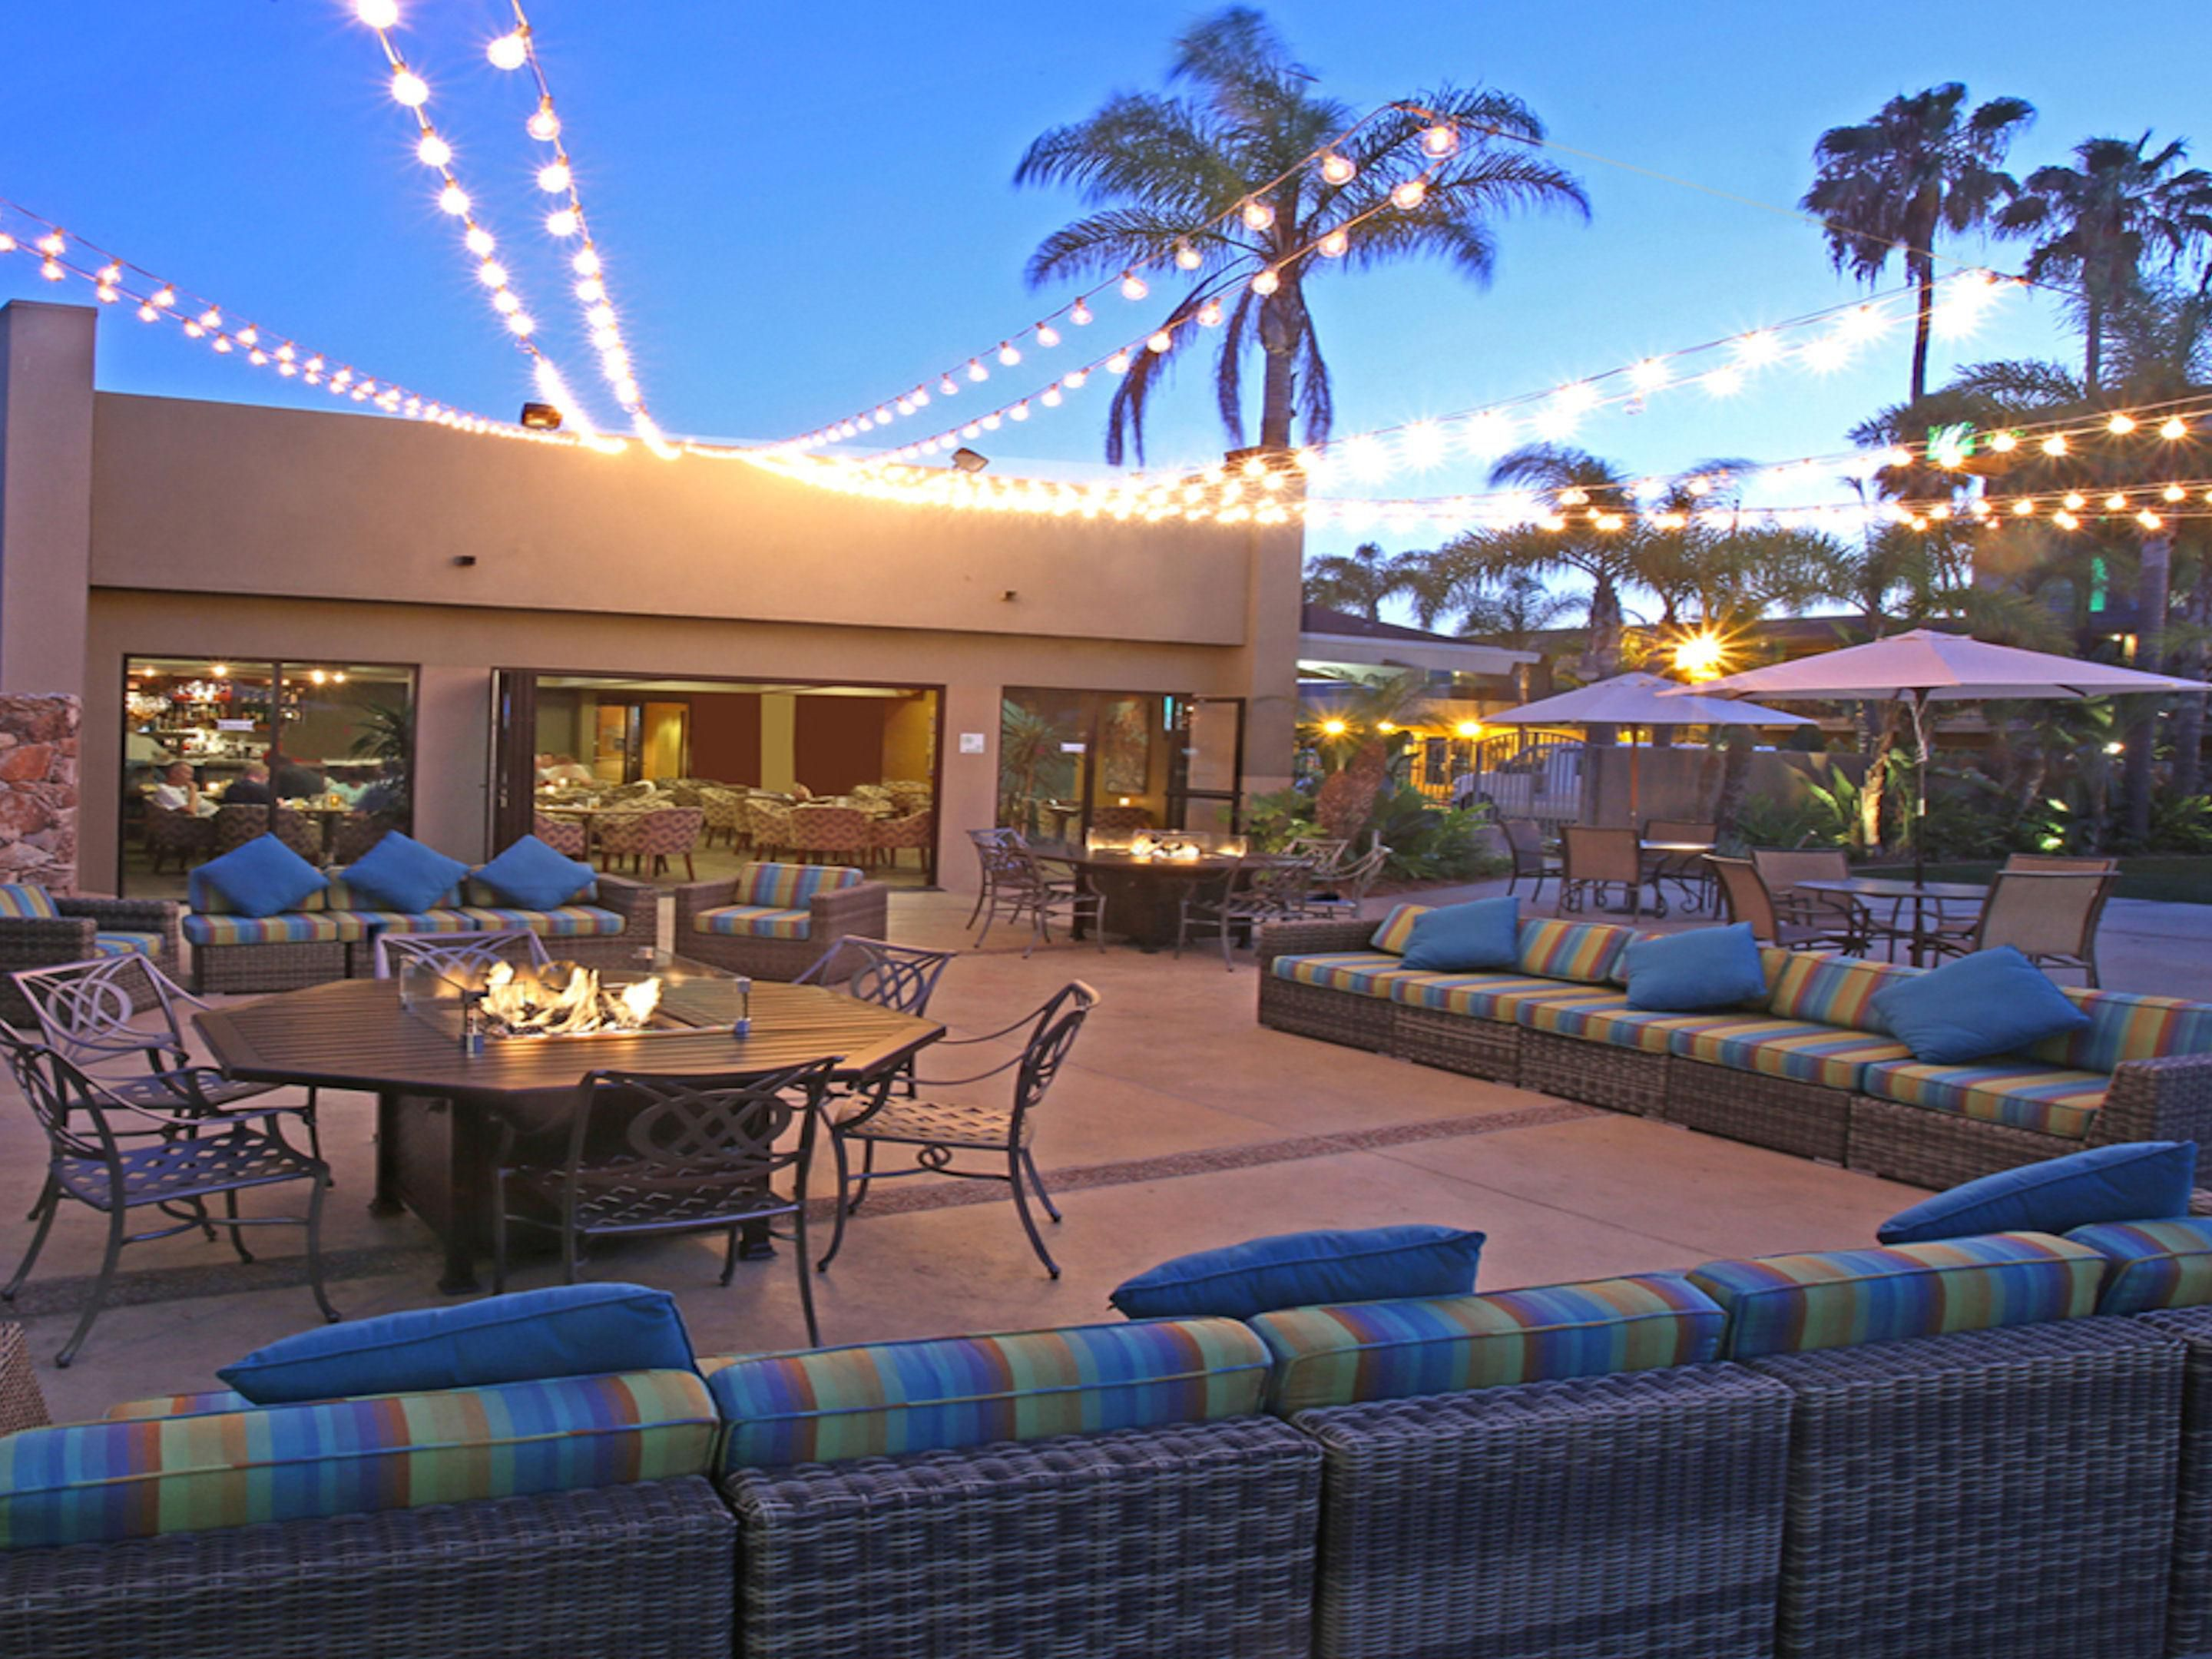 Enjoy our beautiful outdoor patio!